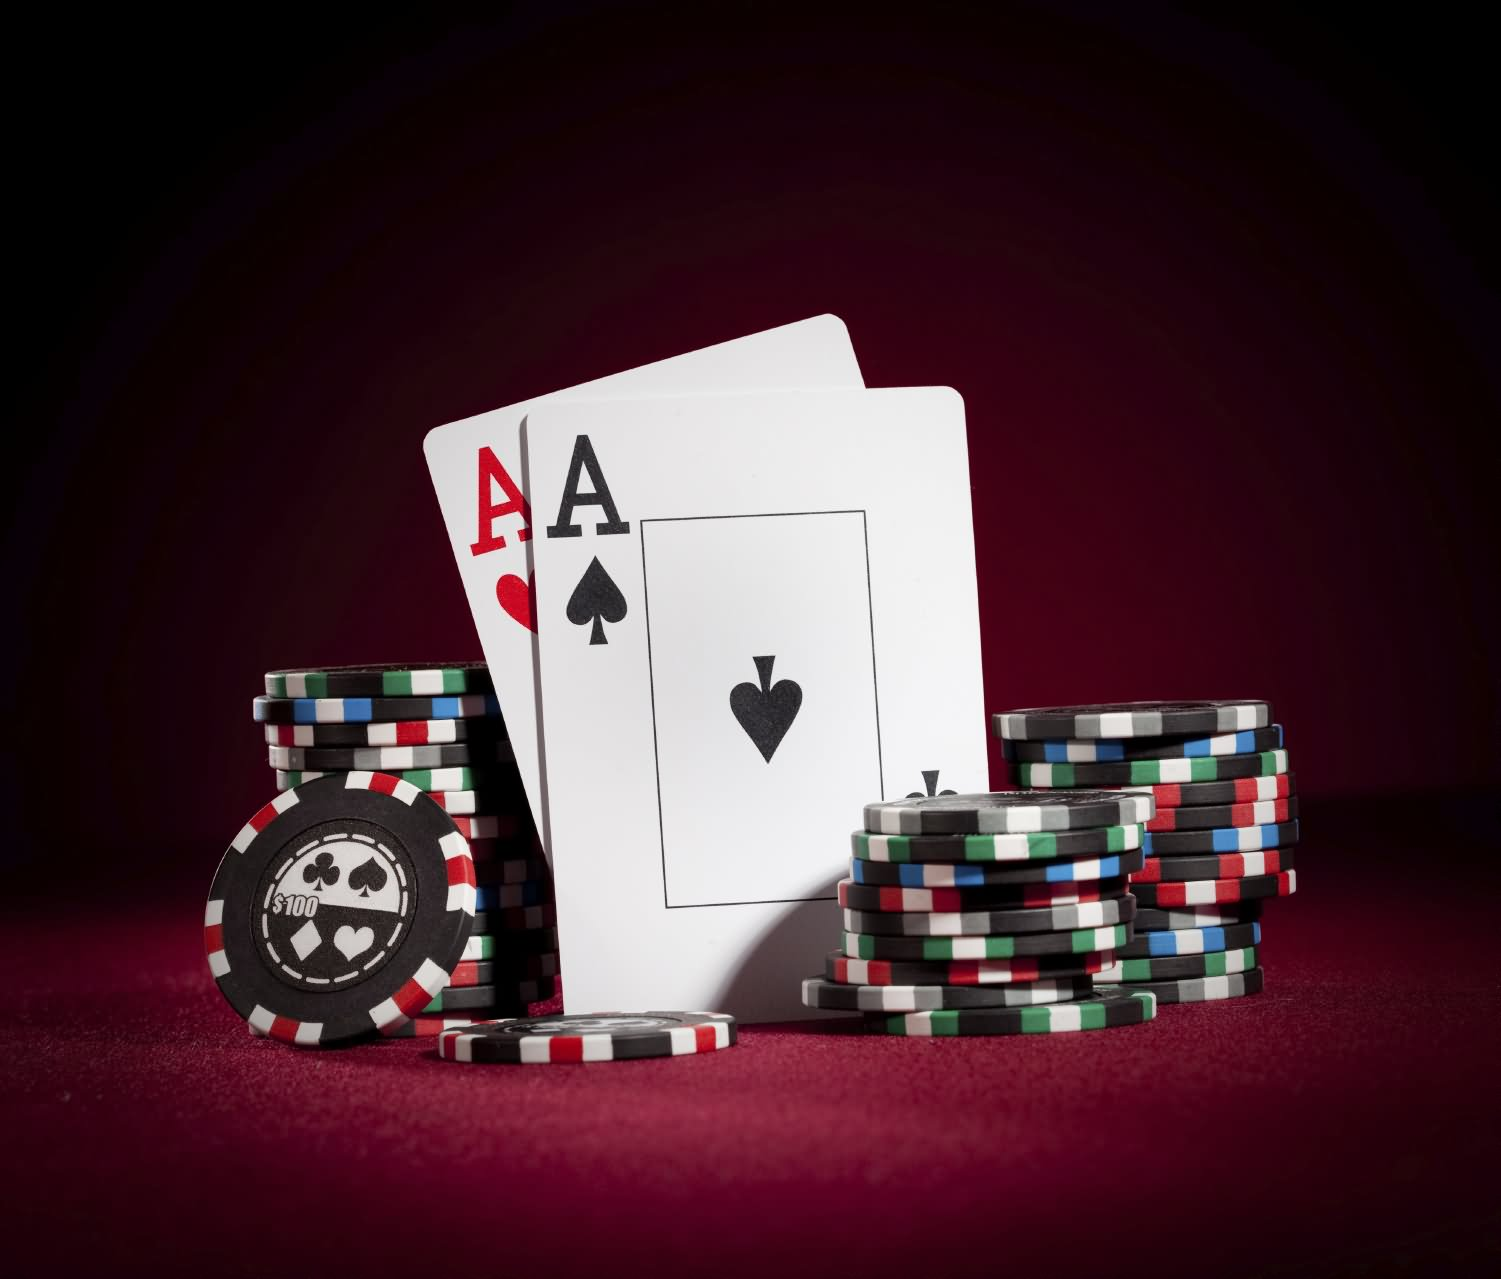 Greatest Poker Sites For 2020 - Reliable Real Money Poker Rooms